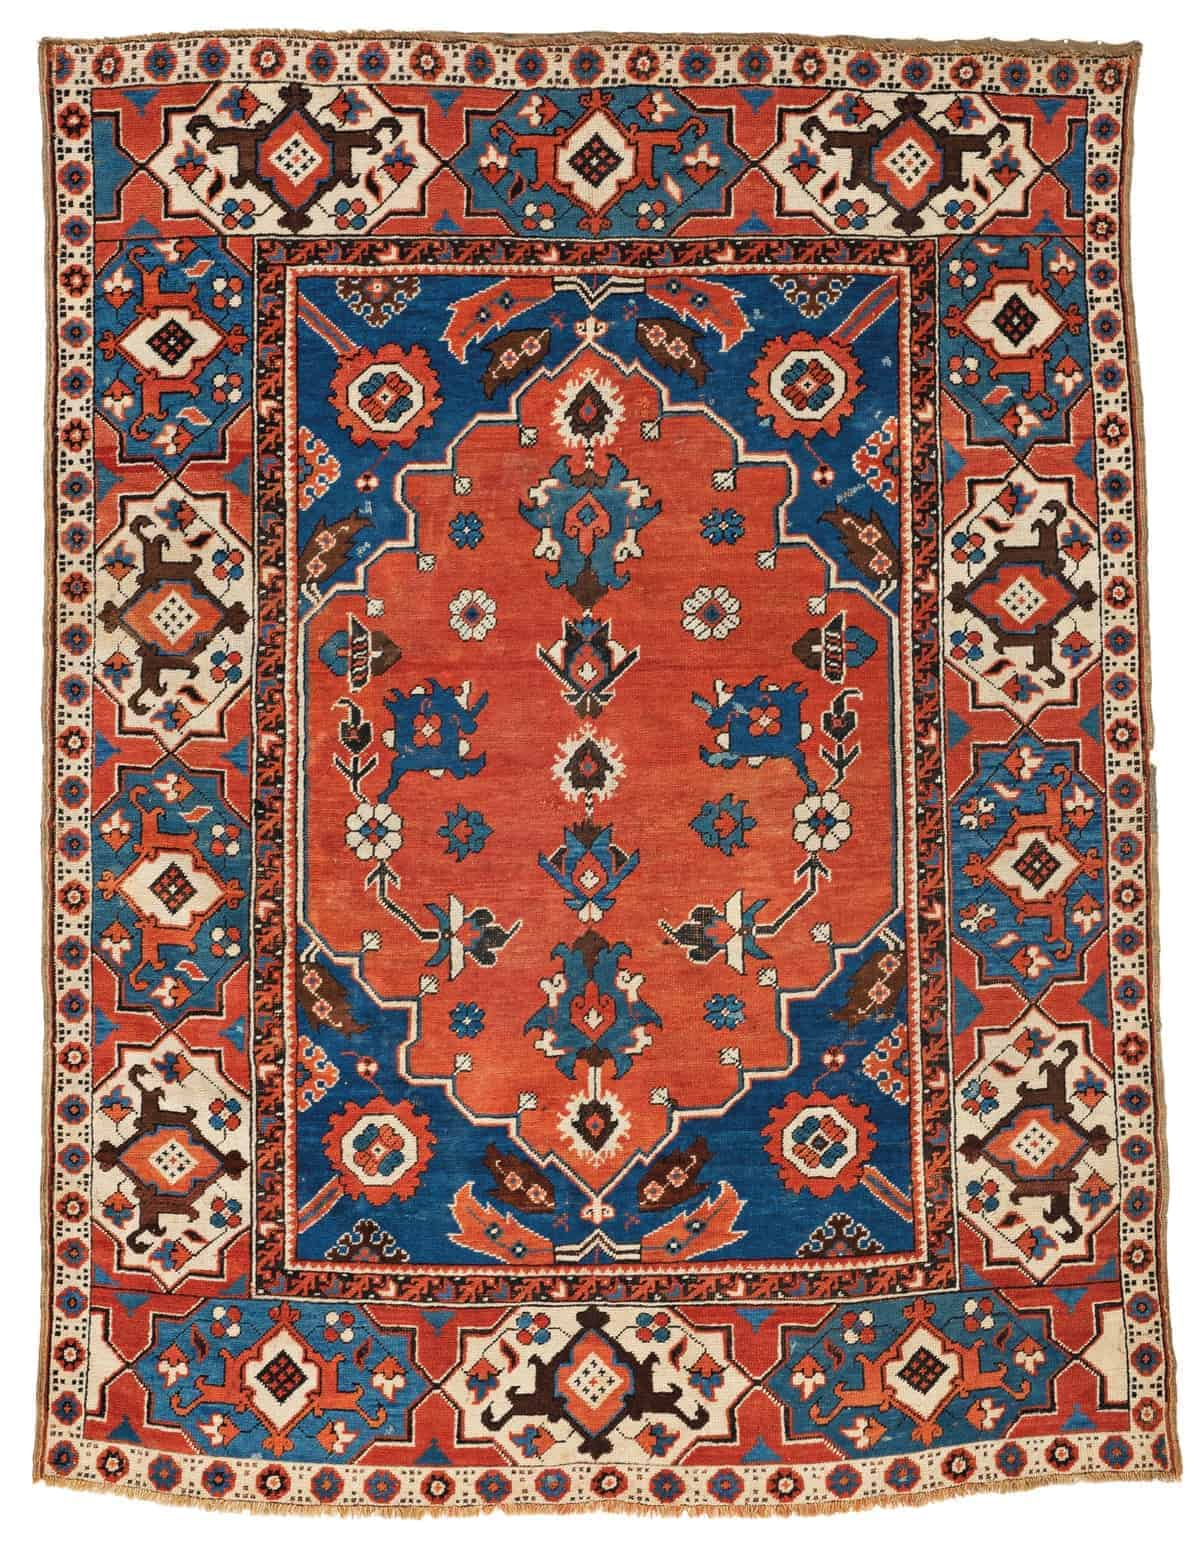 Transylvanian Double Niche Rug